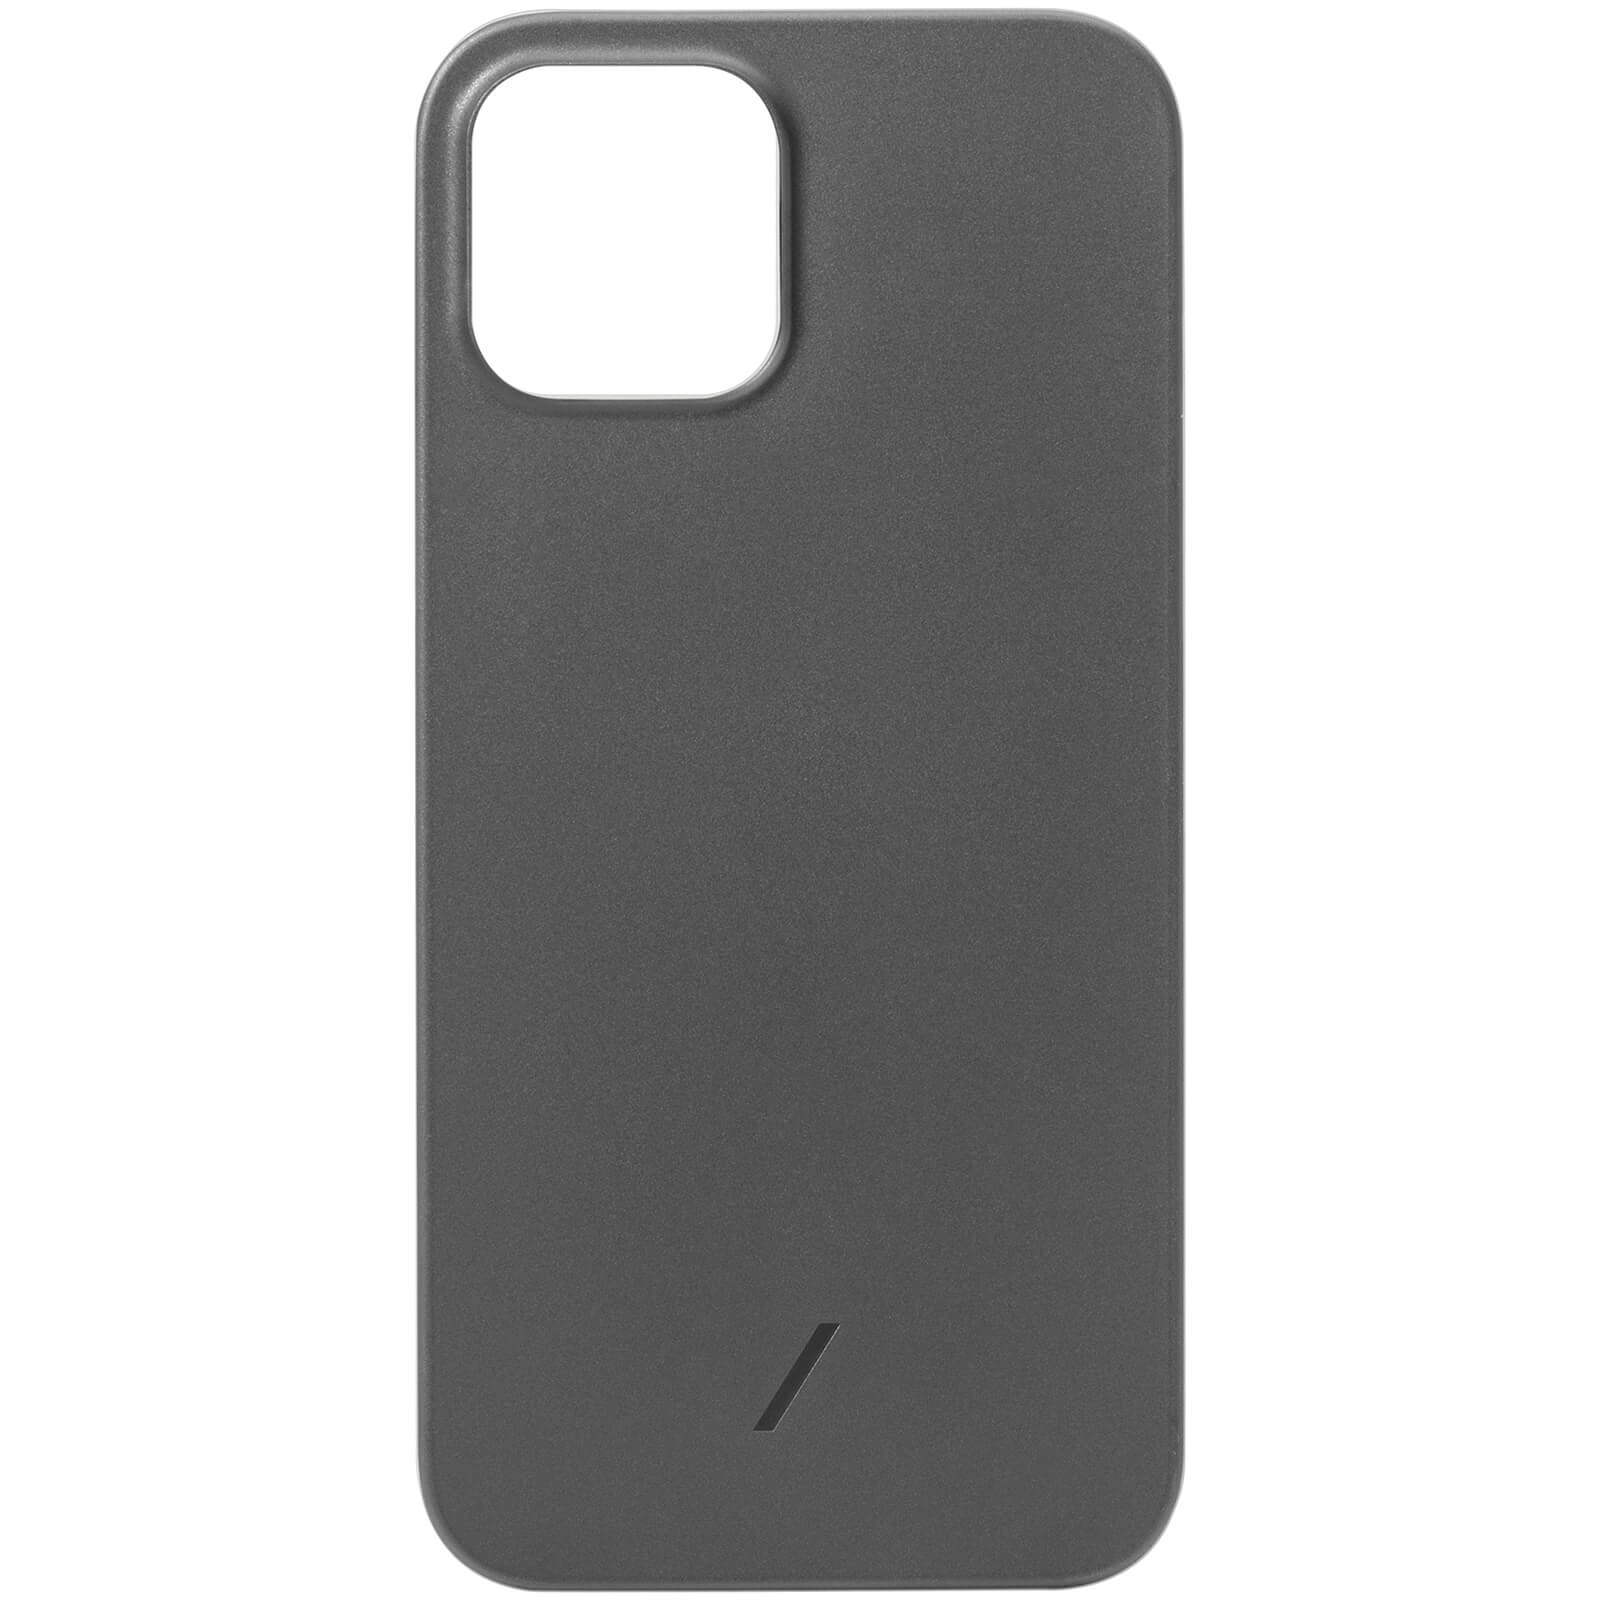 Native Union Clic Air Anti-Bacterial iPhone Case - Smoke - 12 Pro Max